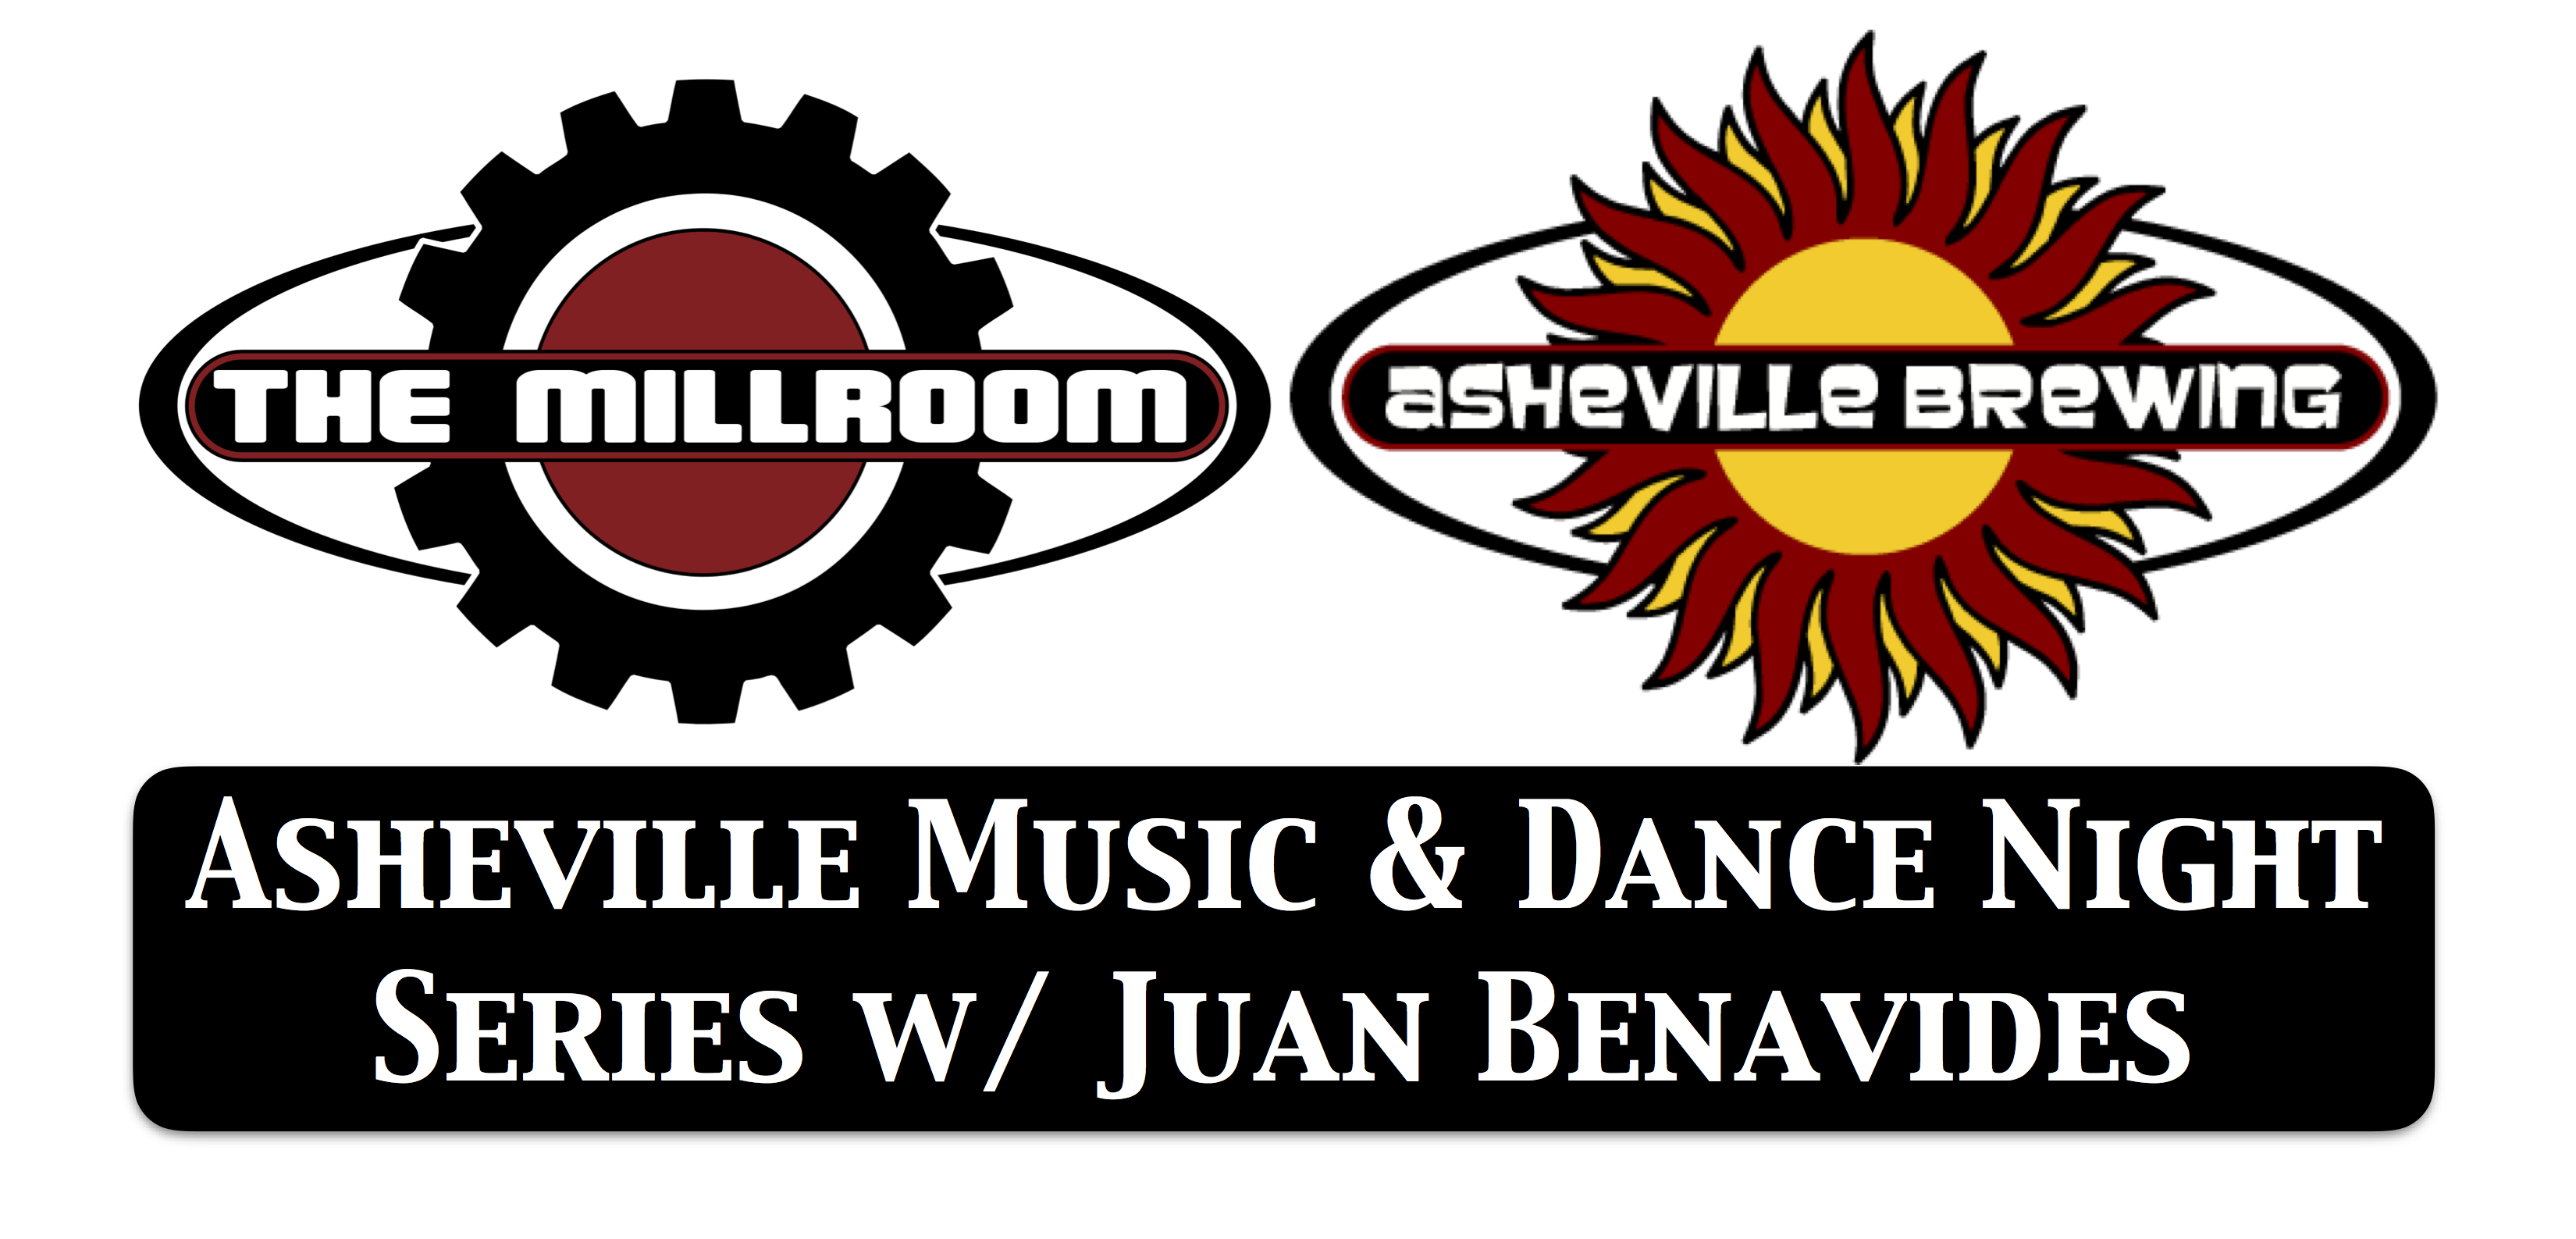 New Asheville Music and Dance Night launches at The Millroom